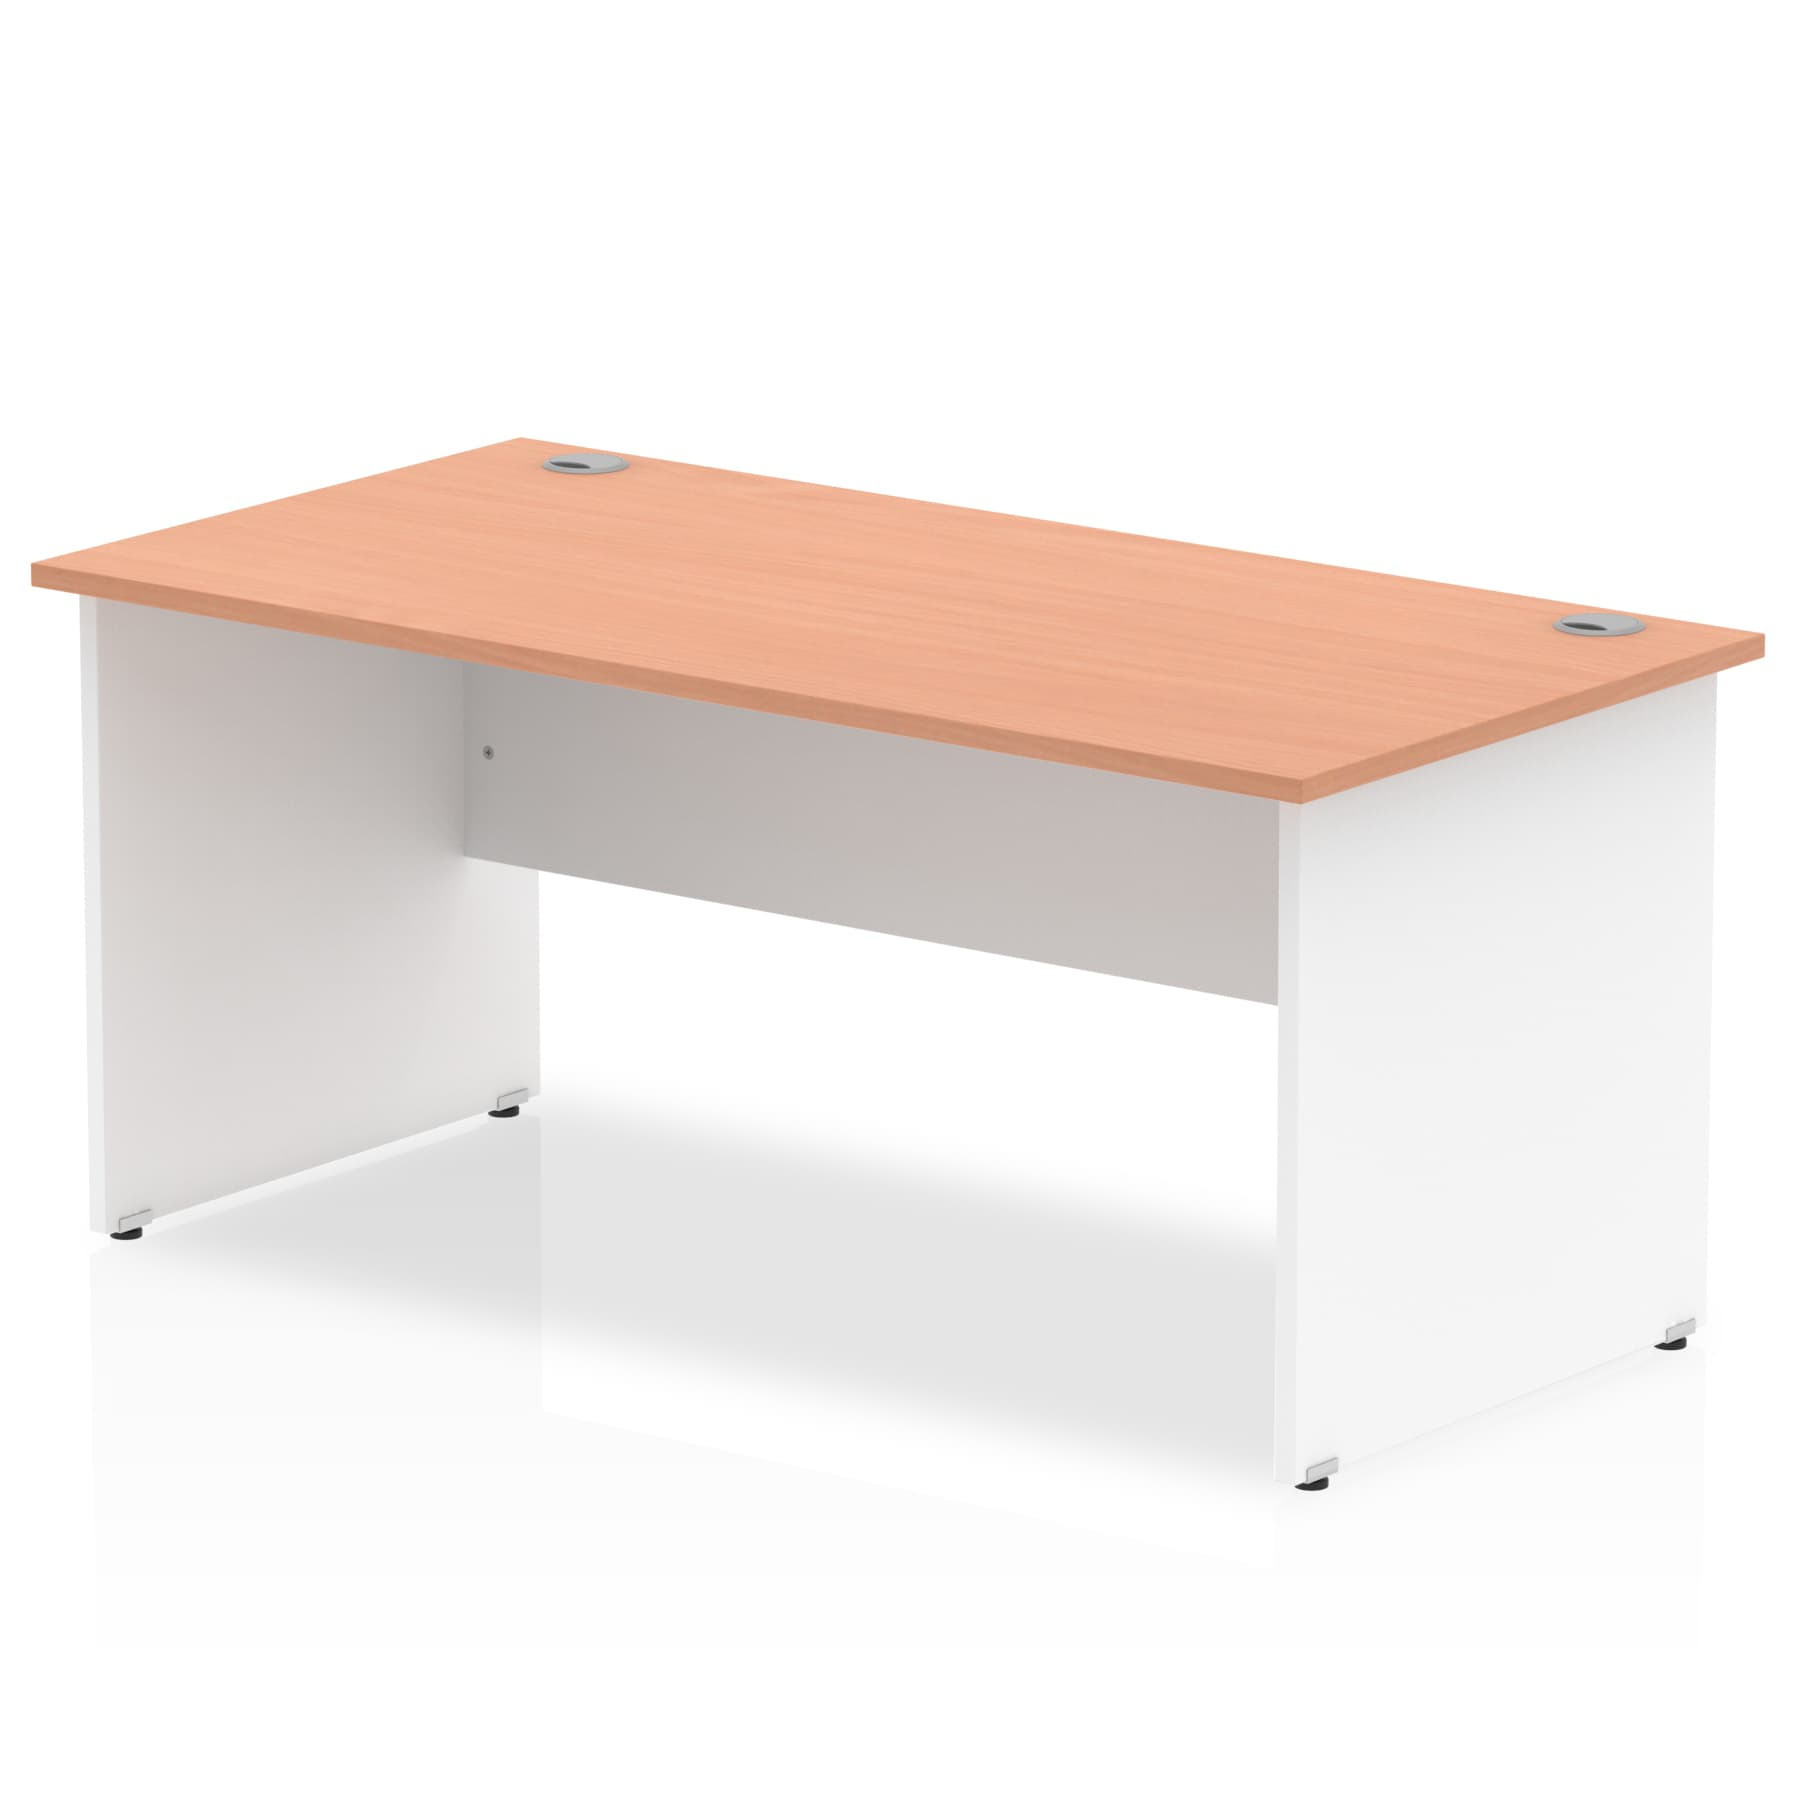 Impulse Panel End 1800 Rectangle Desk with White Panels